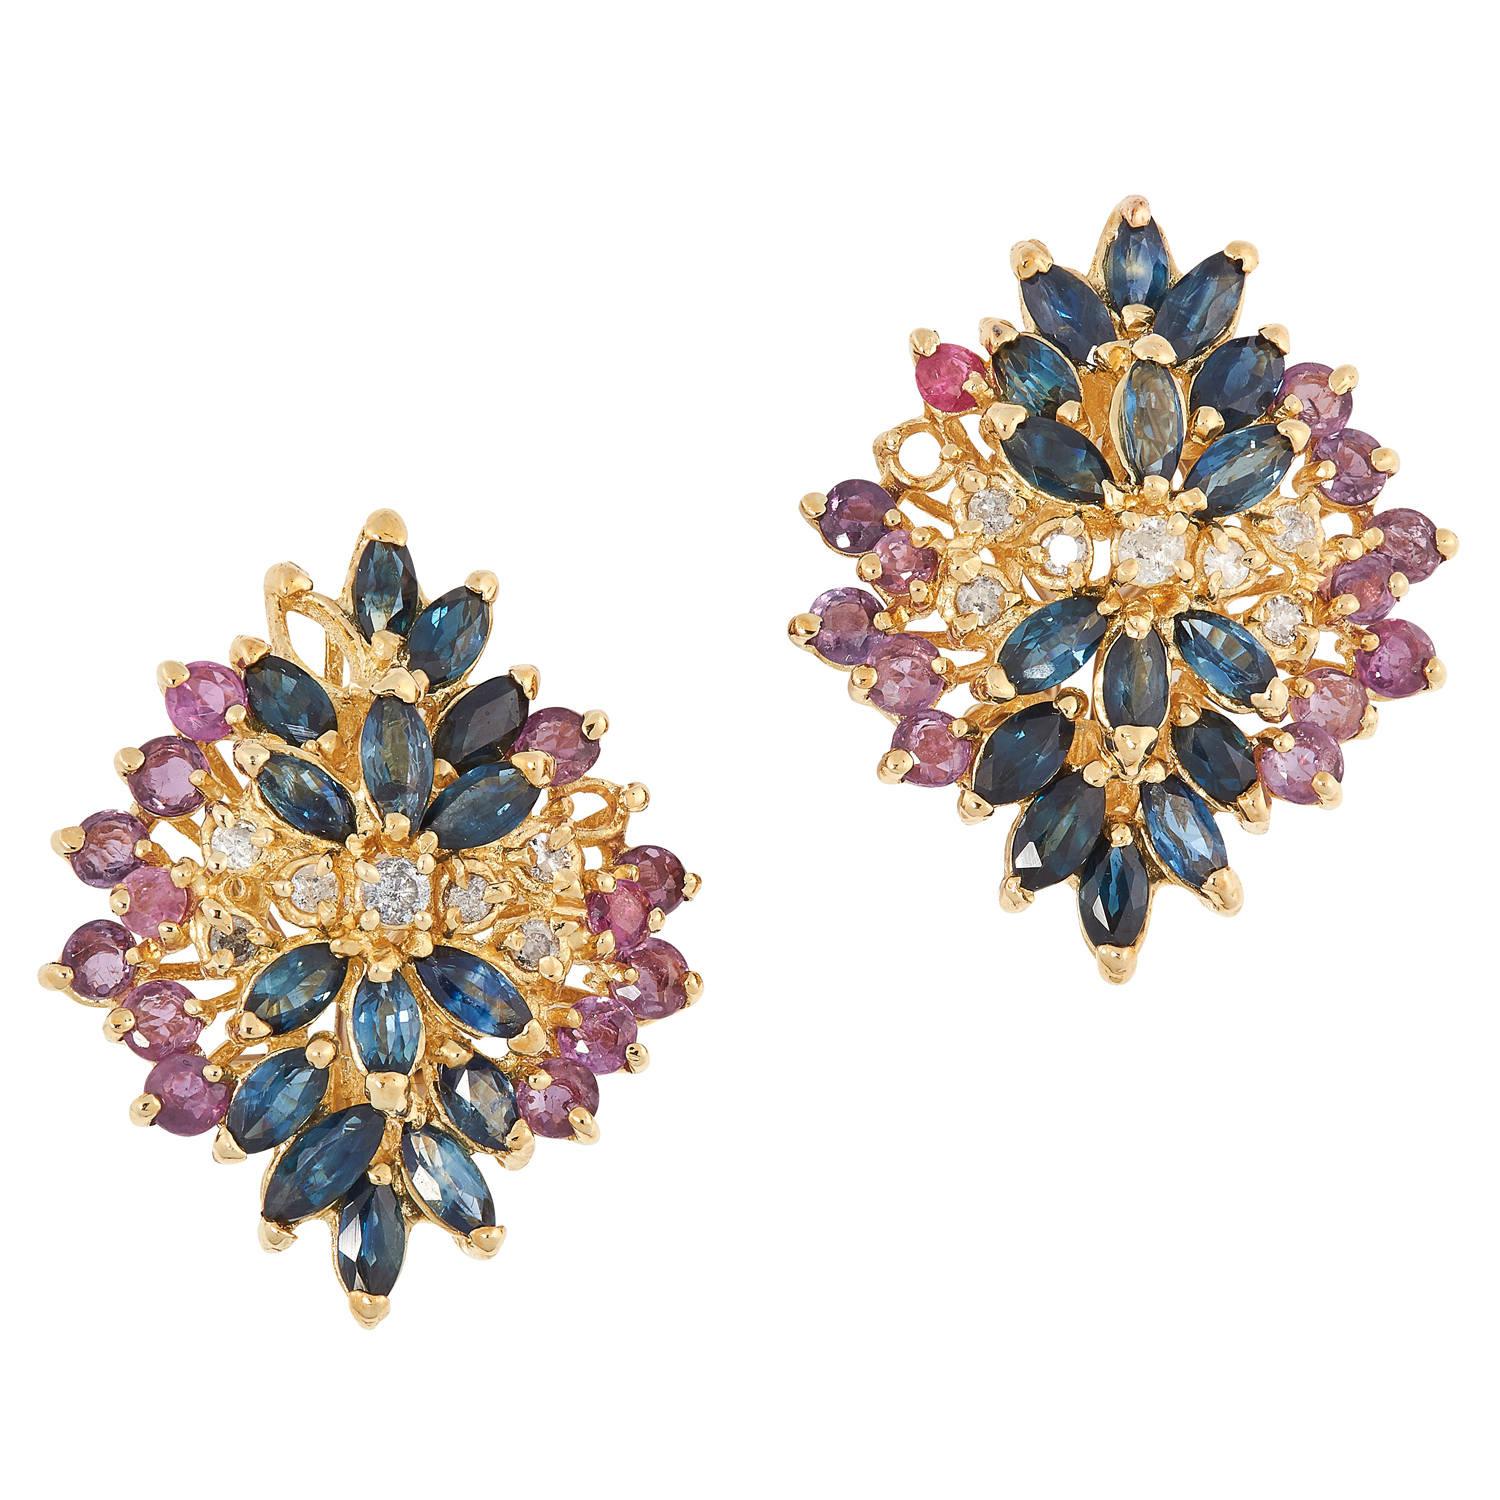 A PAIR OF RUBY, DIAMOND AND SAPPHIRE CLUSTER EARRINGS set with round cut rubies, marquise cut